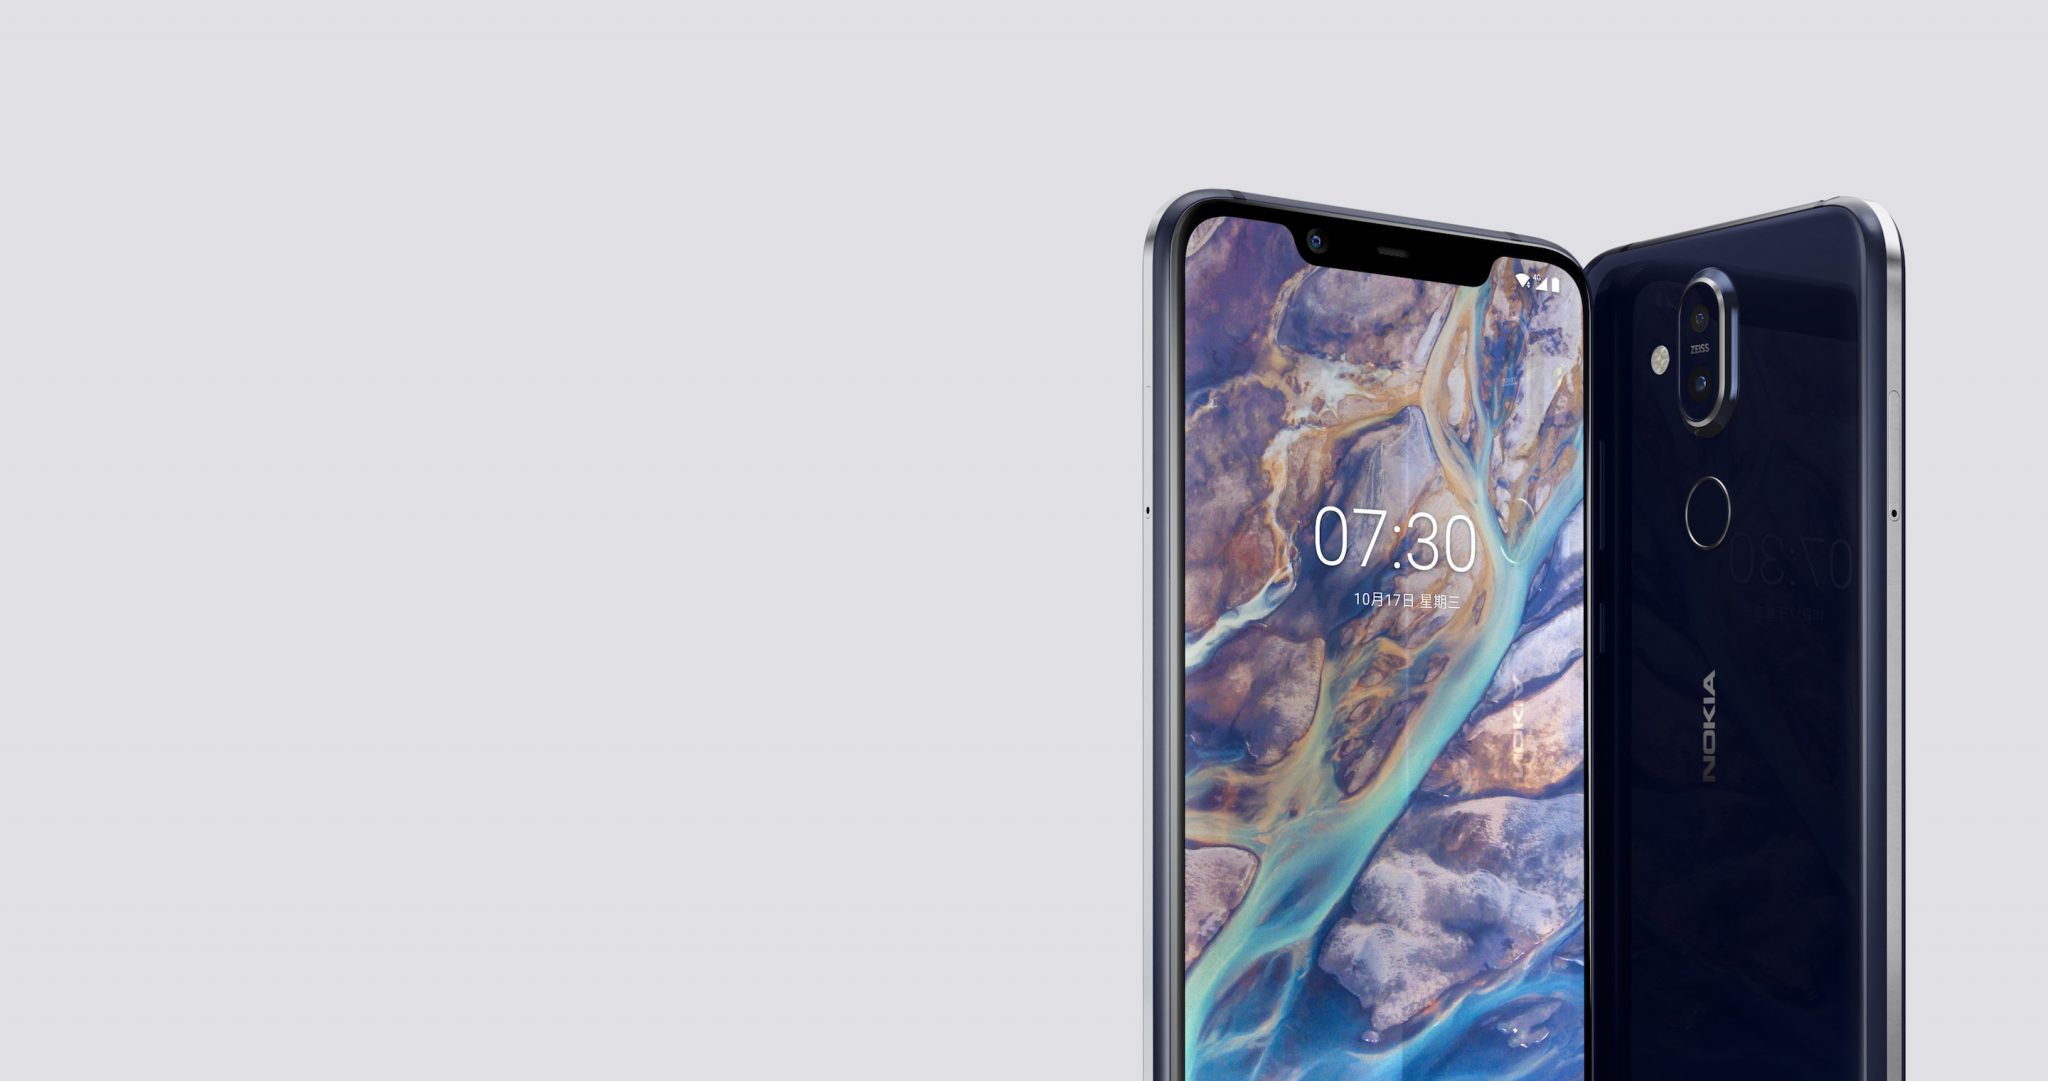 Nokia X7 (Nokia 7.1 Plus) with Snapdragon 710 launched in China 3